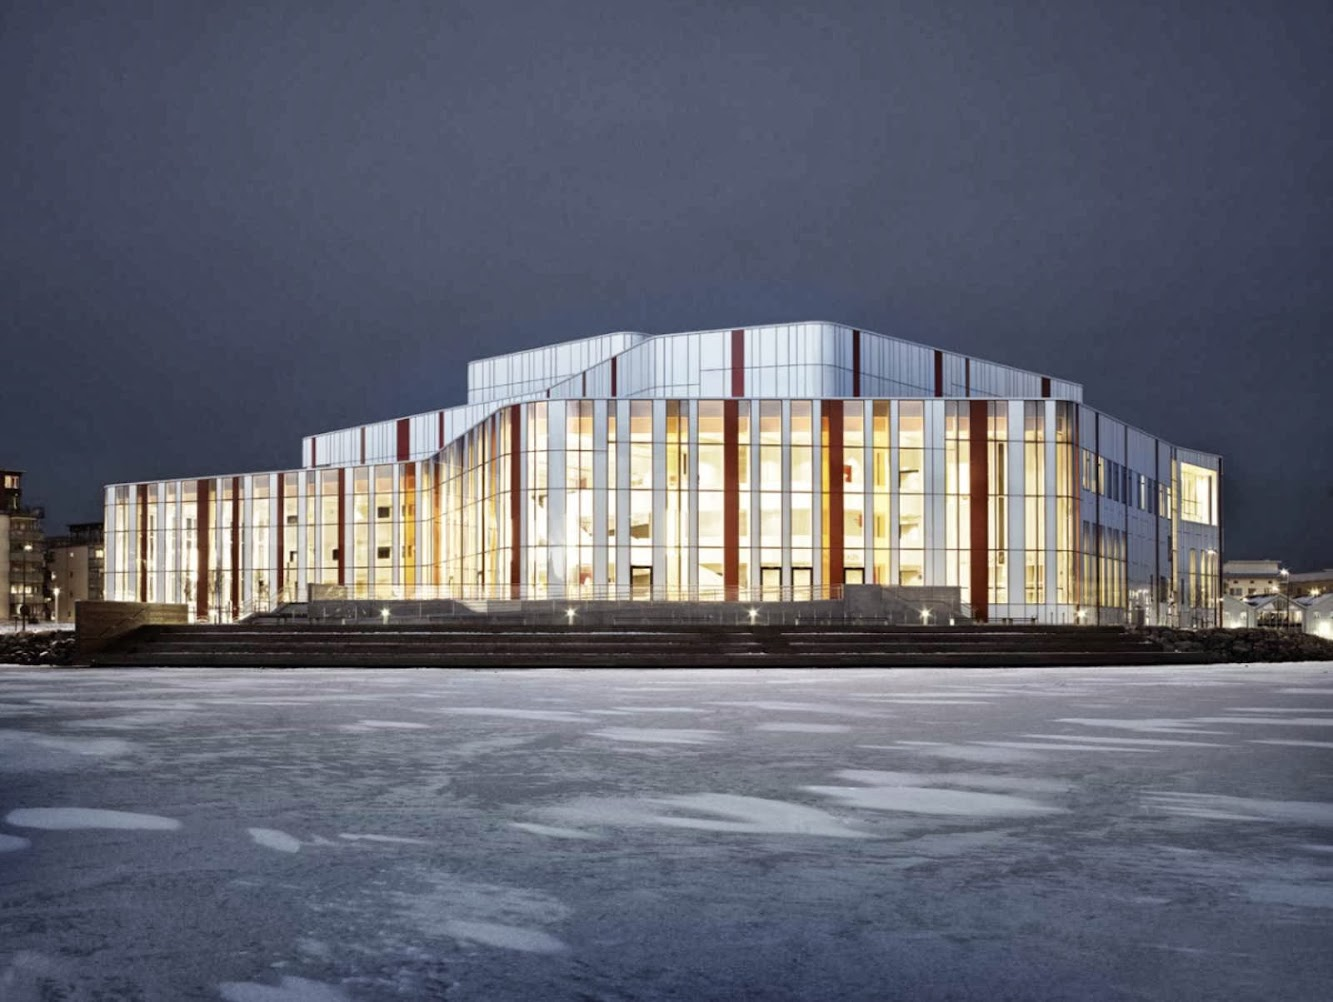 Spira Performing Arts Center by Wingardh Arkitektkontor